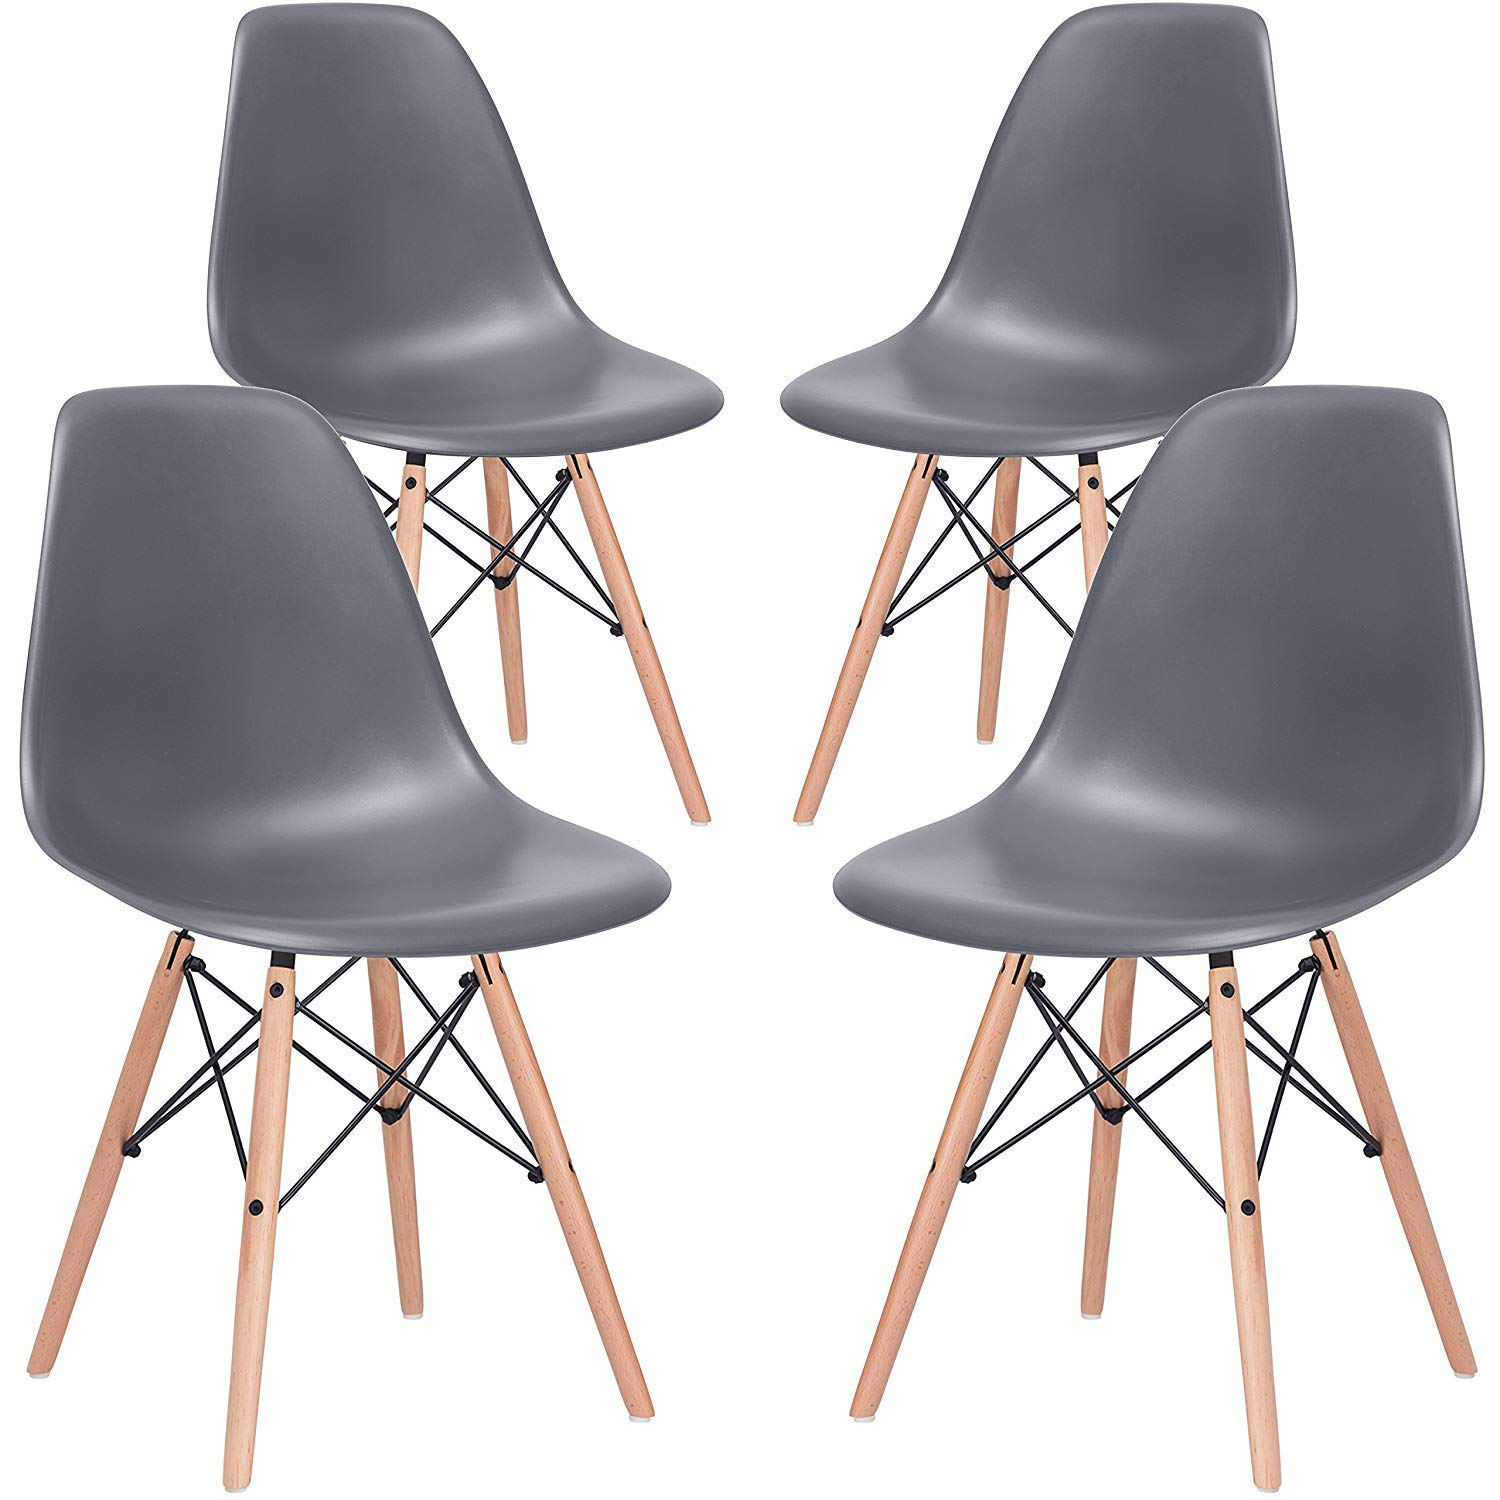 Nicemoods Armless Classic Eames Plastic Chair, Mid Century Modern Style Dining Chairs Indoor Wooden Legs Set of 4 for Kitchen, Dining Room, Bedroom, Living Room Side Chairs (Grey)